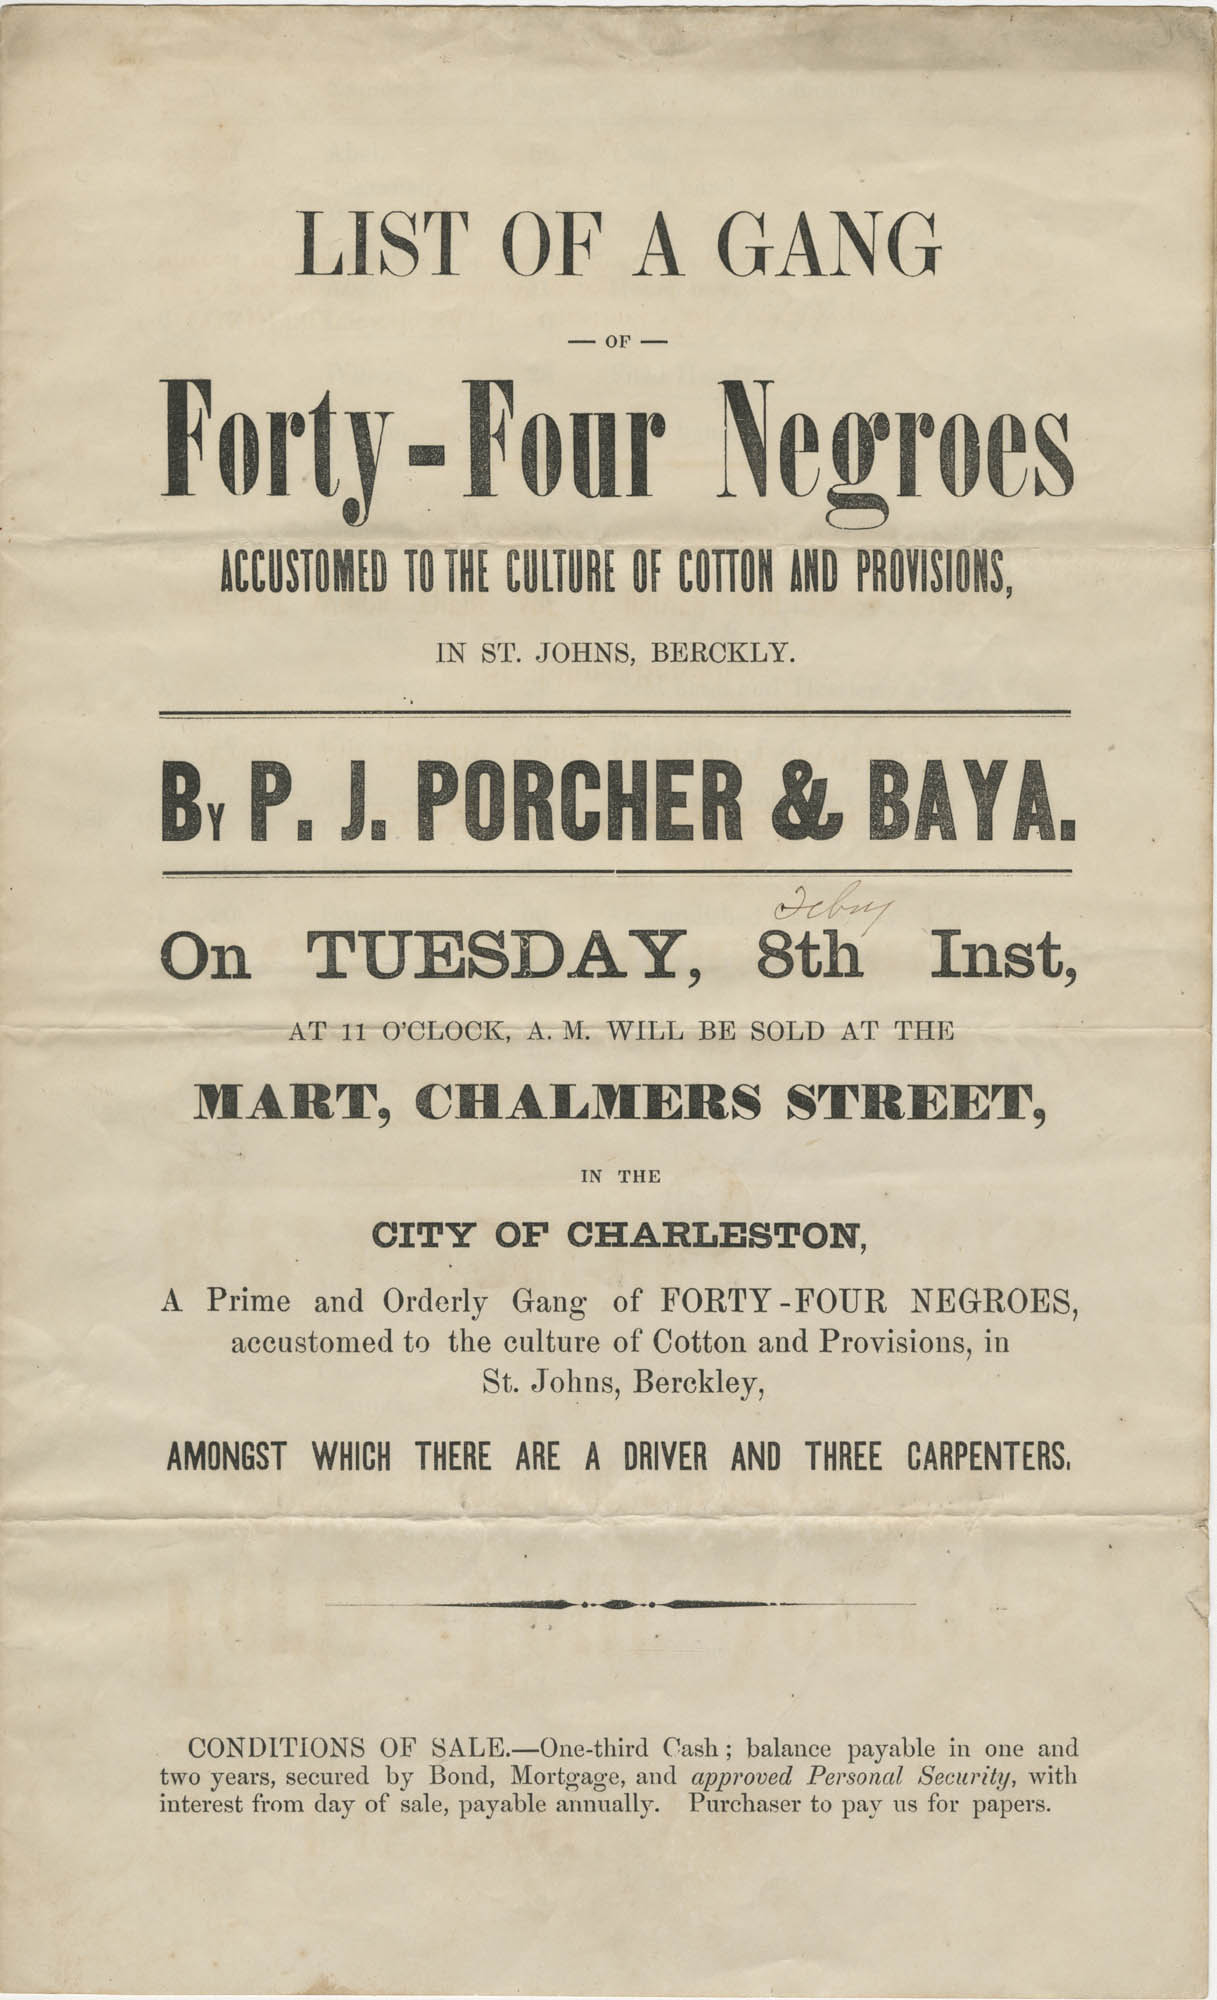 P.J. Porcher and Baya slave sale broadside